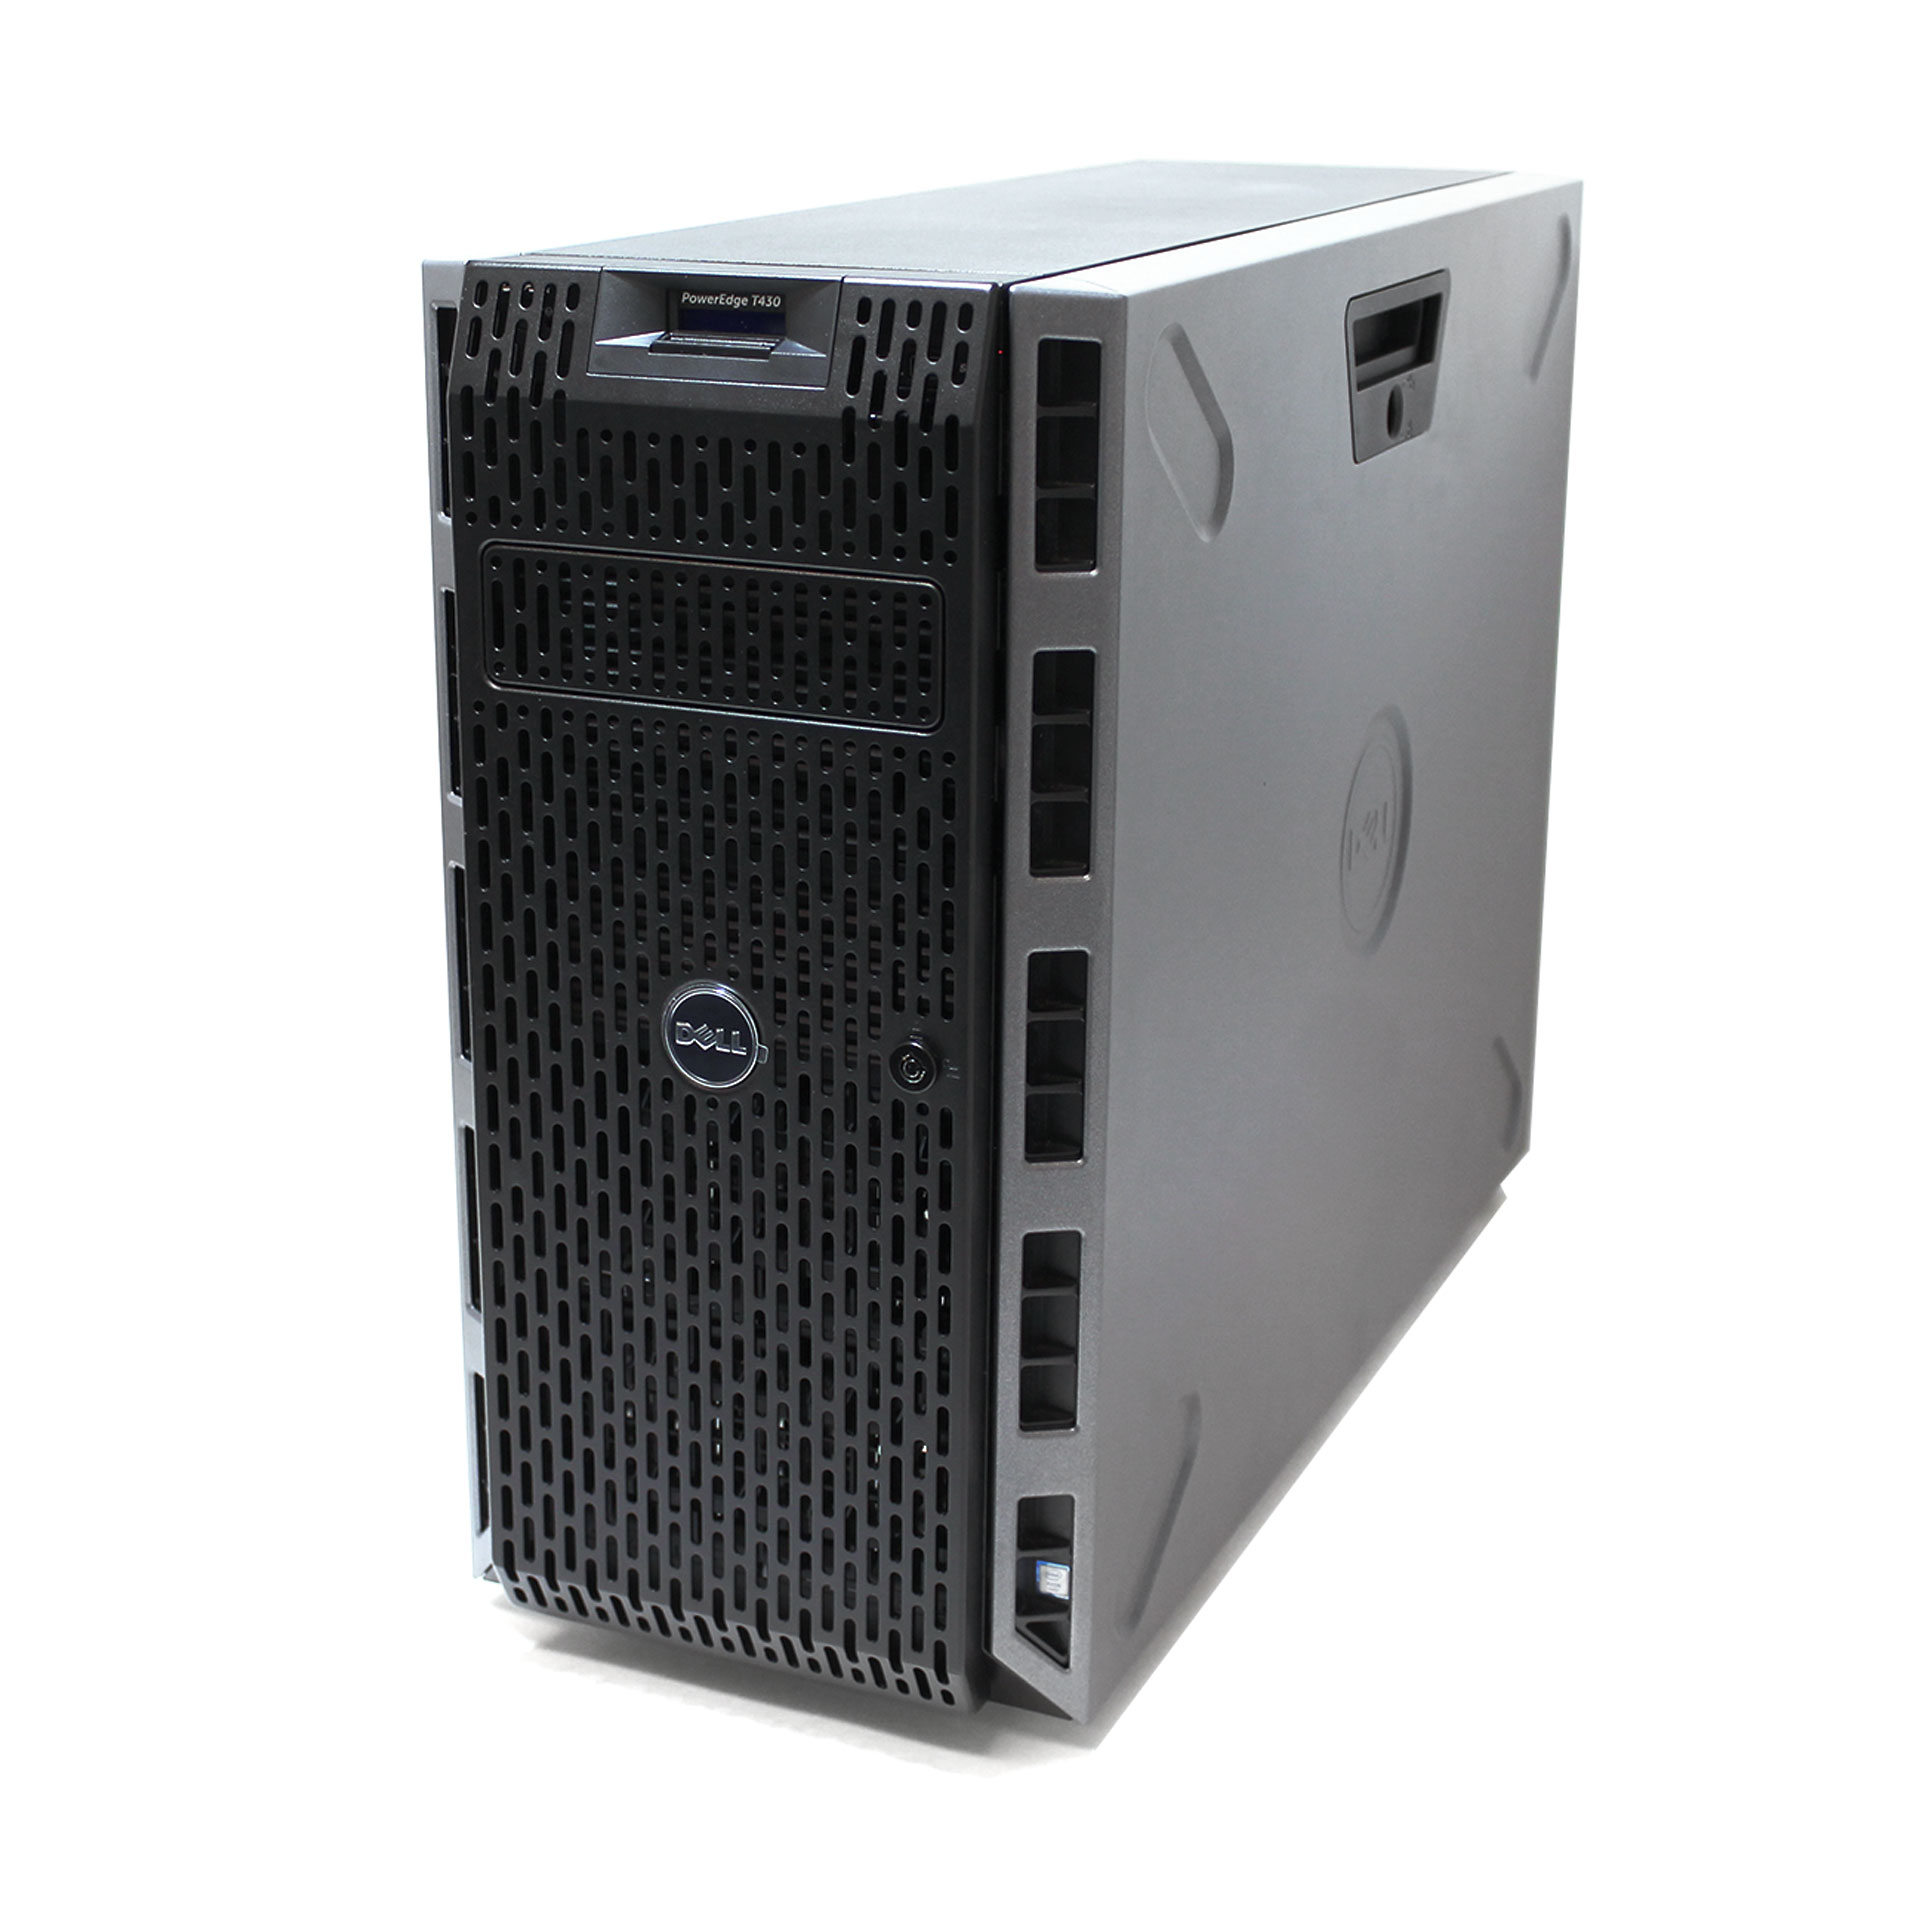 DELL Tower 5U Server PowerEdge T430 2 x Xeon E5-2623v3 32GB DDR4